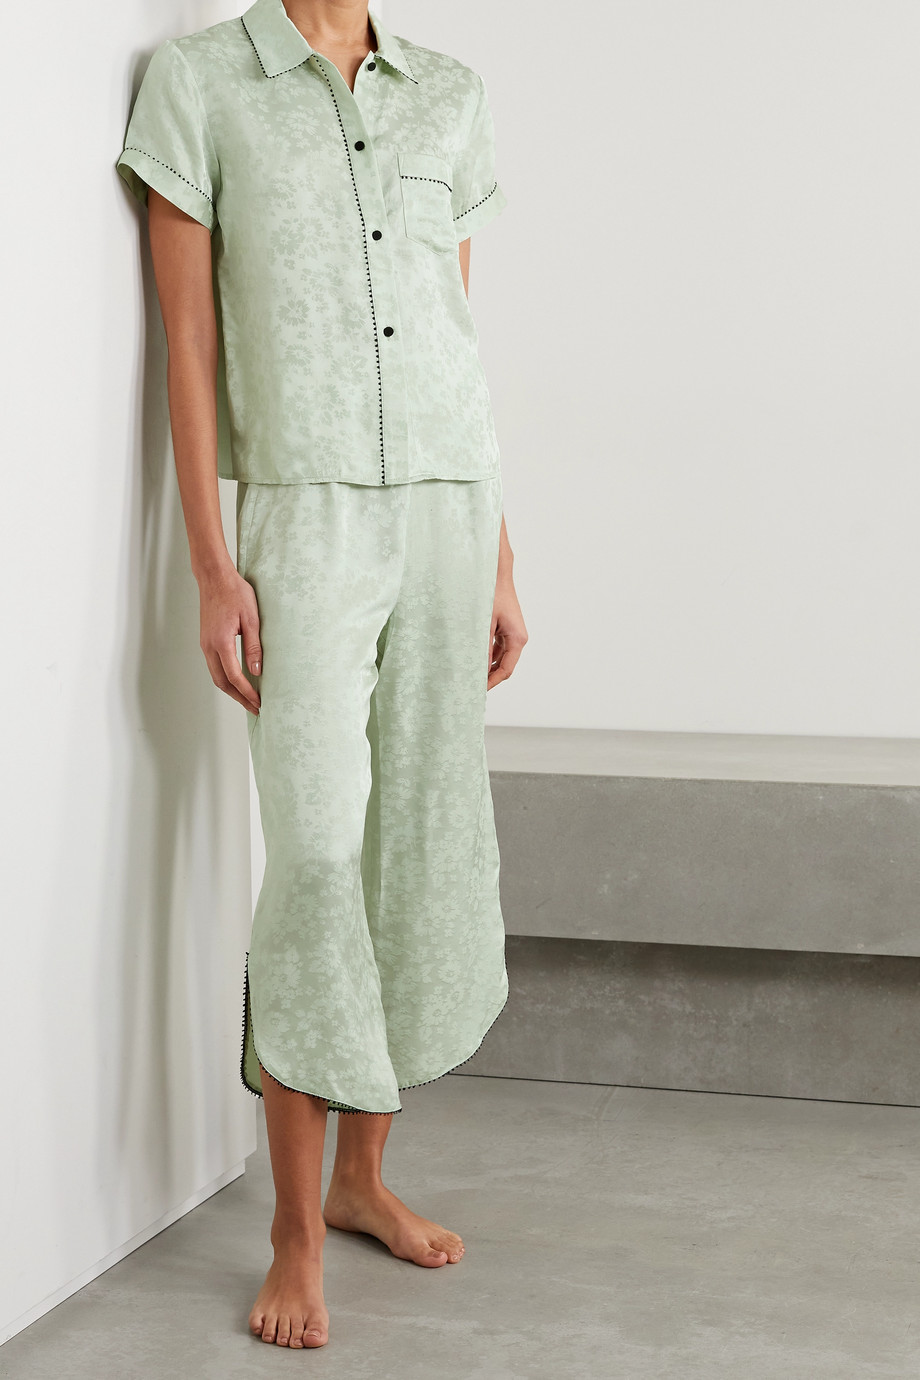 MORGAN LANE Tami picot-trimmed satin-jacquard pajama shirt